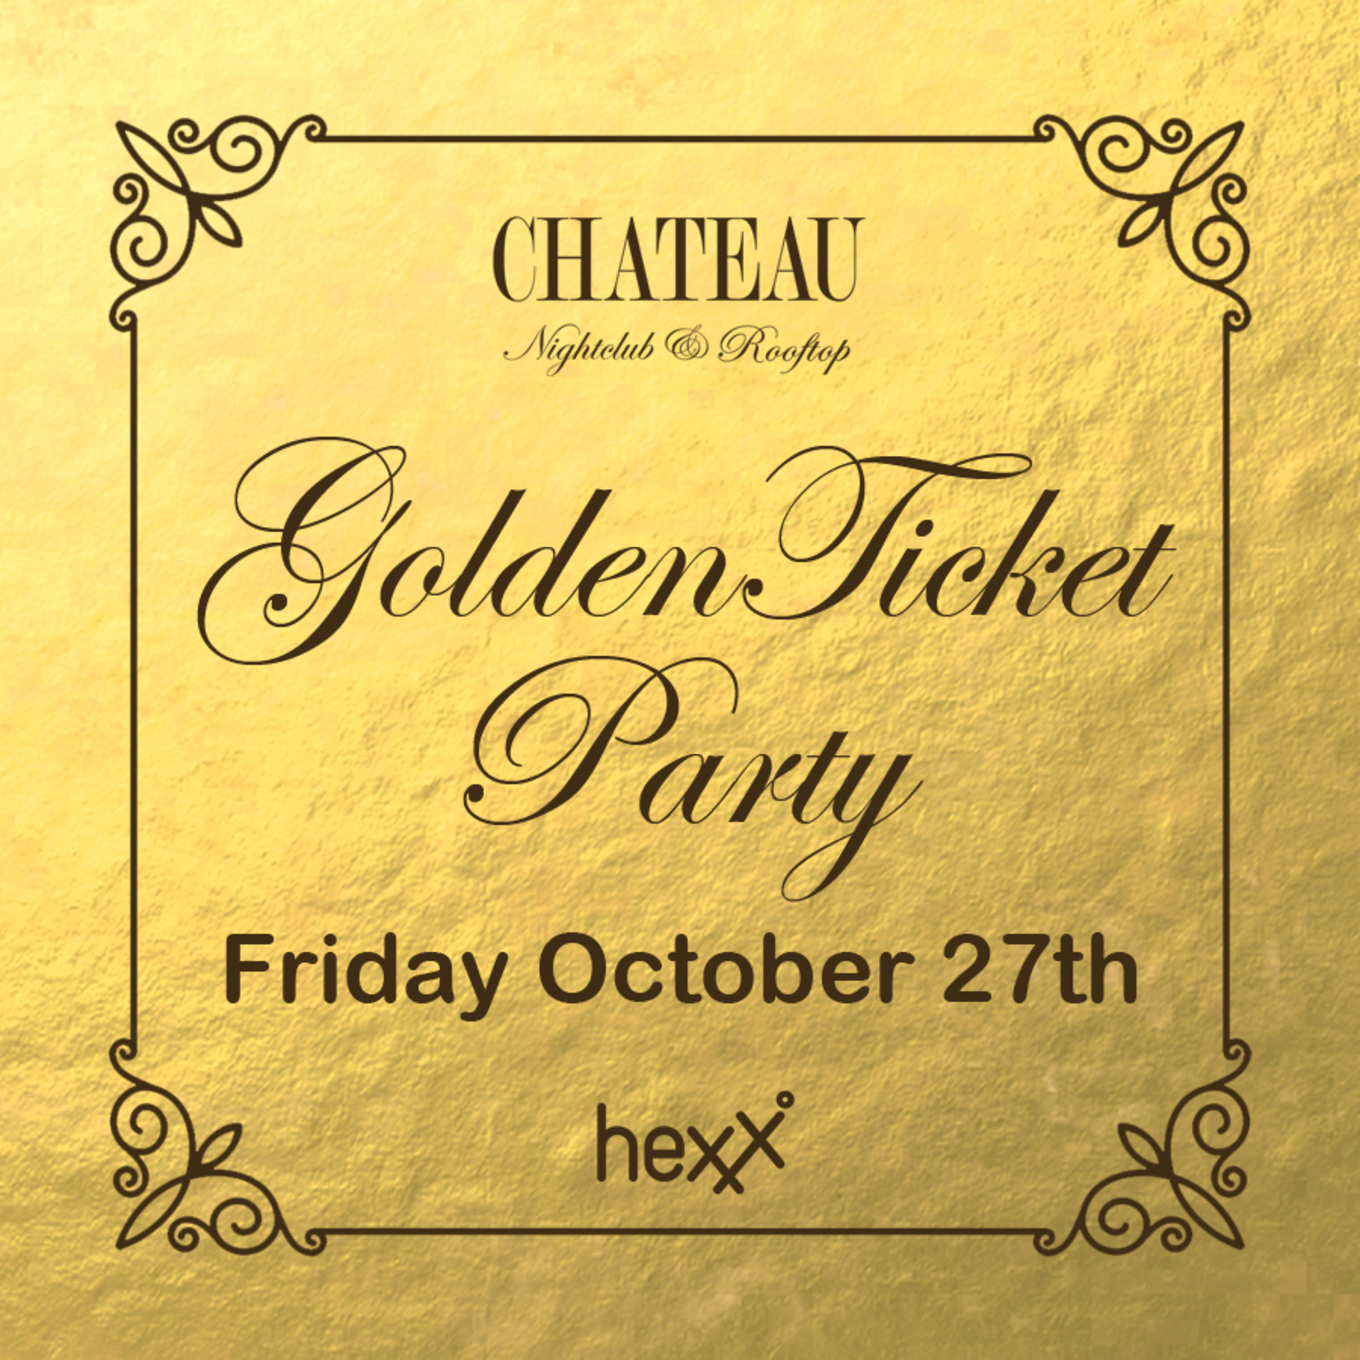 Golden Ticket Party with DJ Bayati at Chateau - Friday, Oct 27 ...